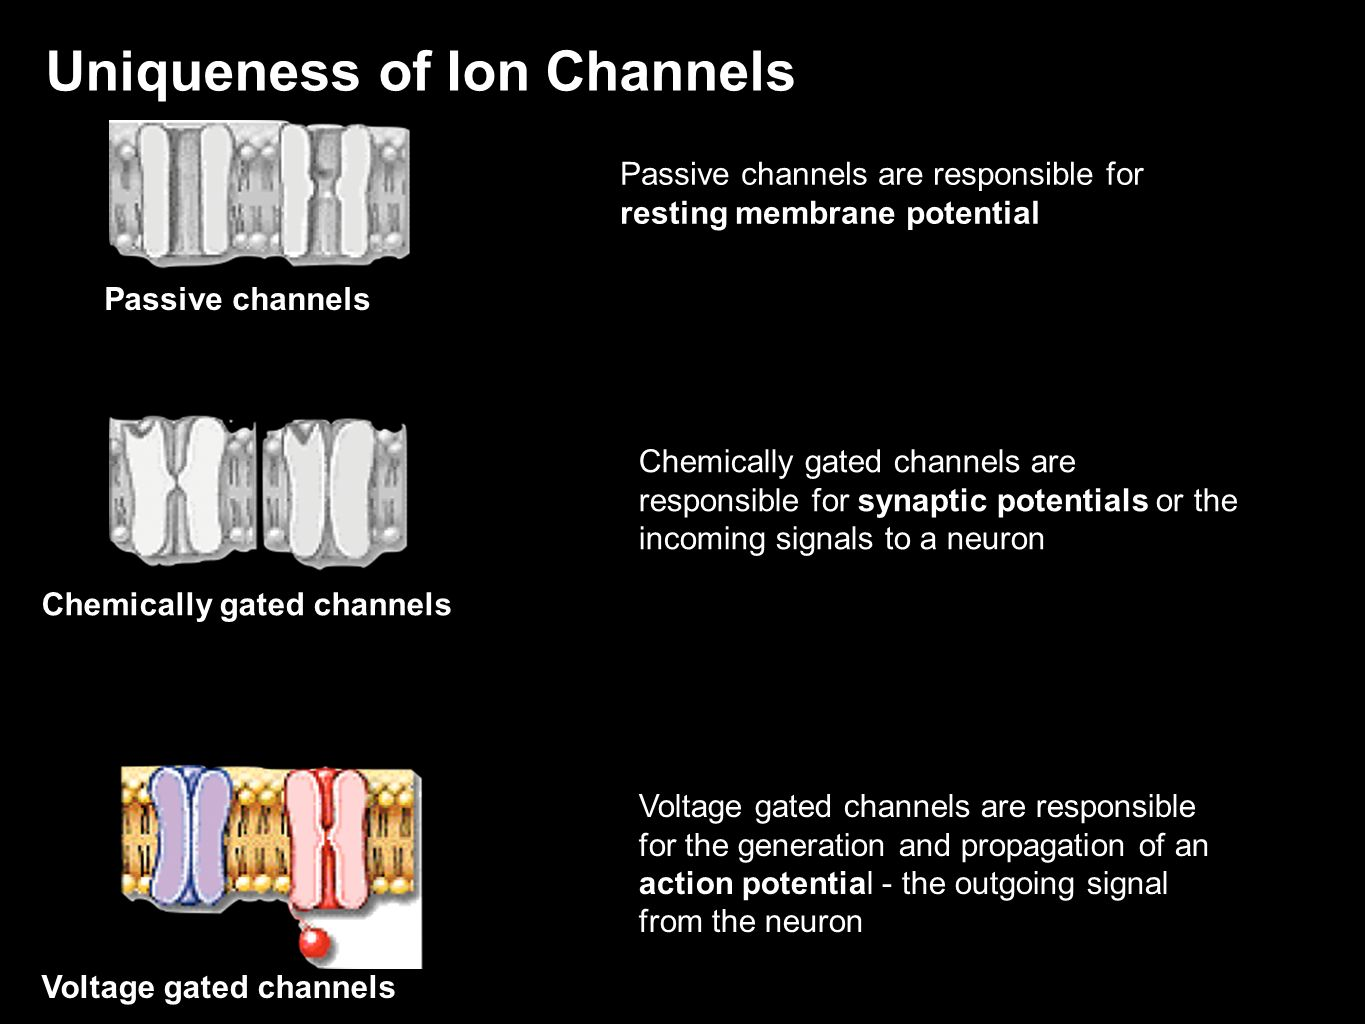 Uniqueness of Ion Channels